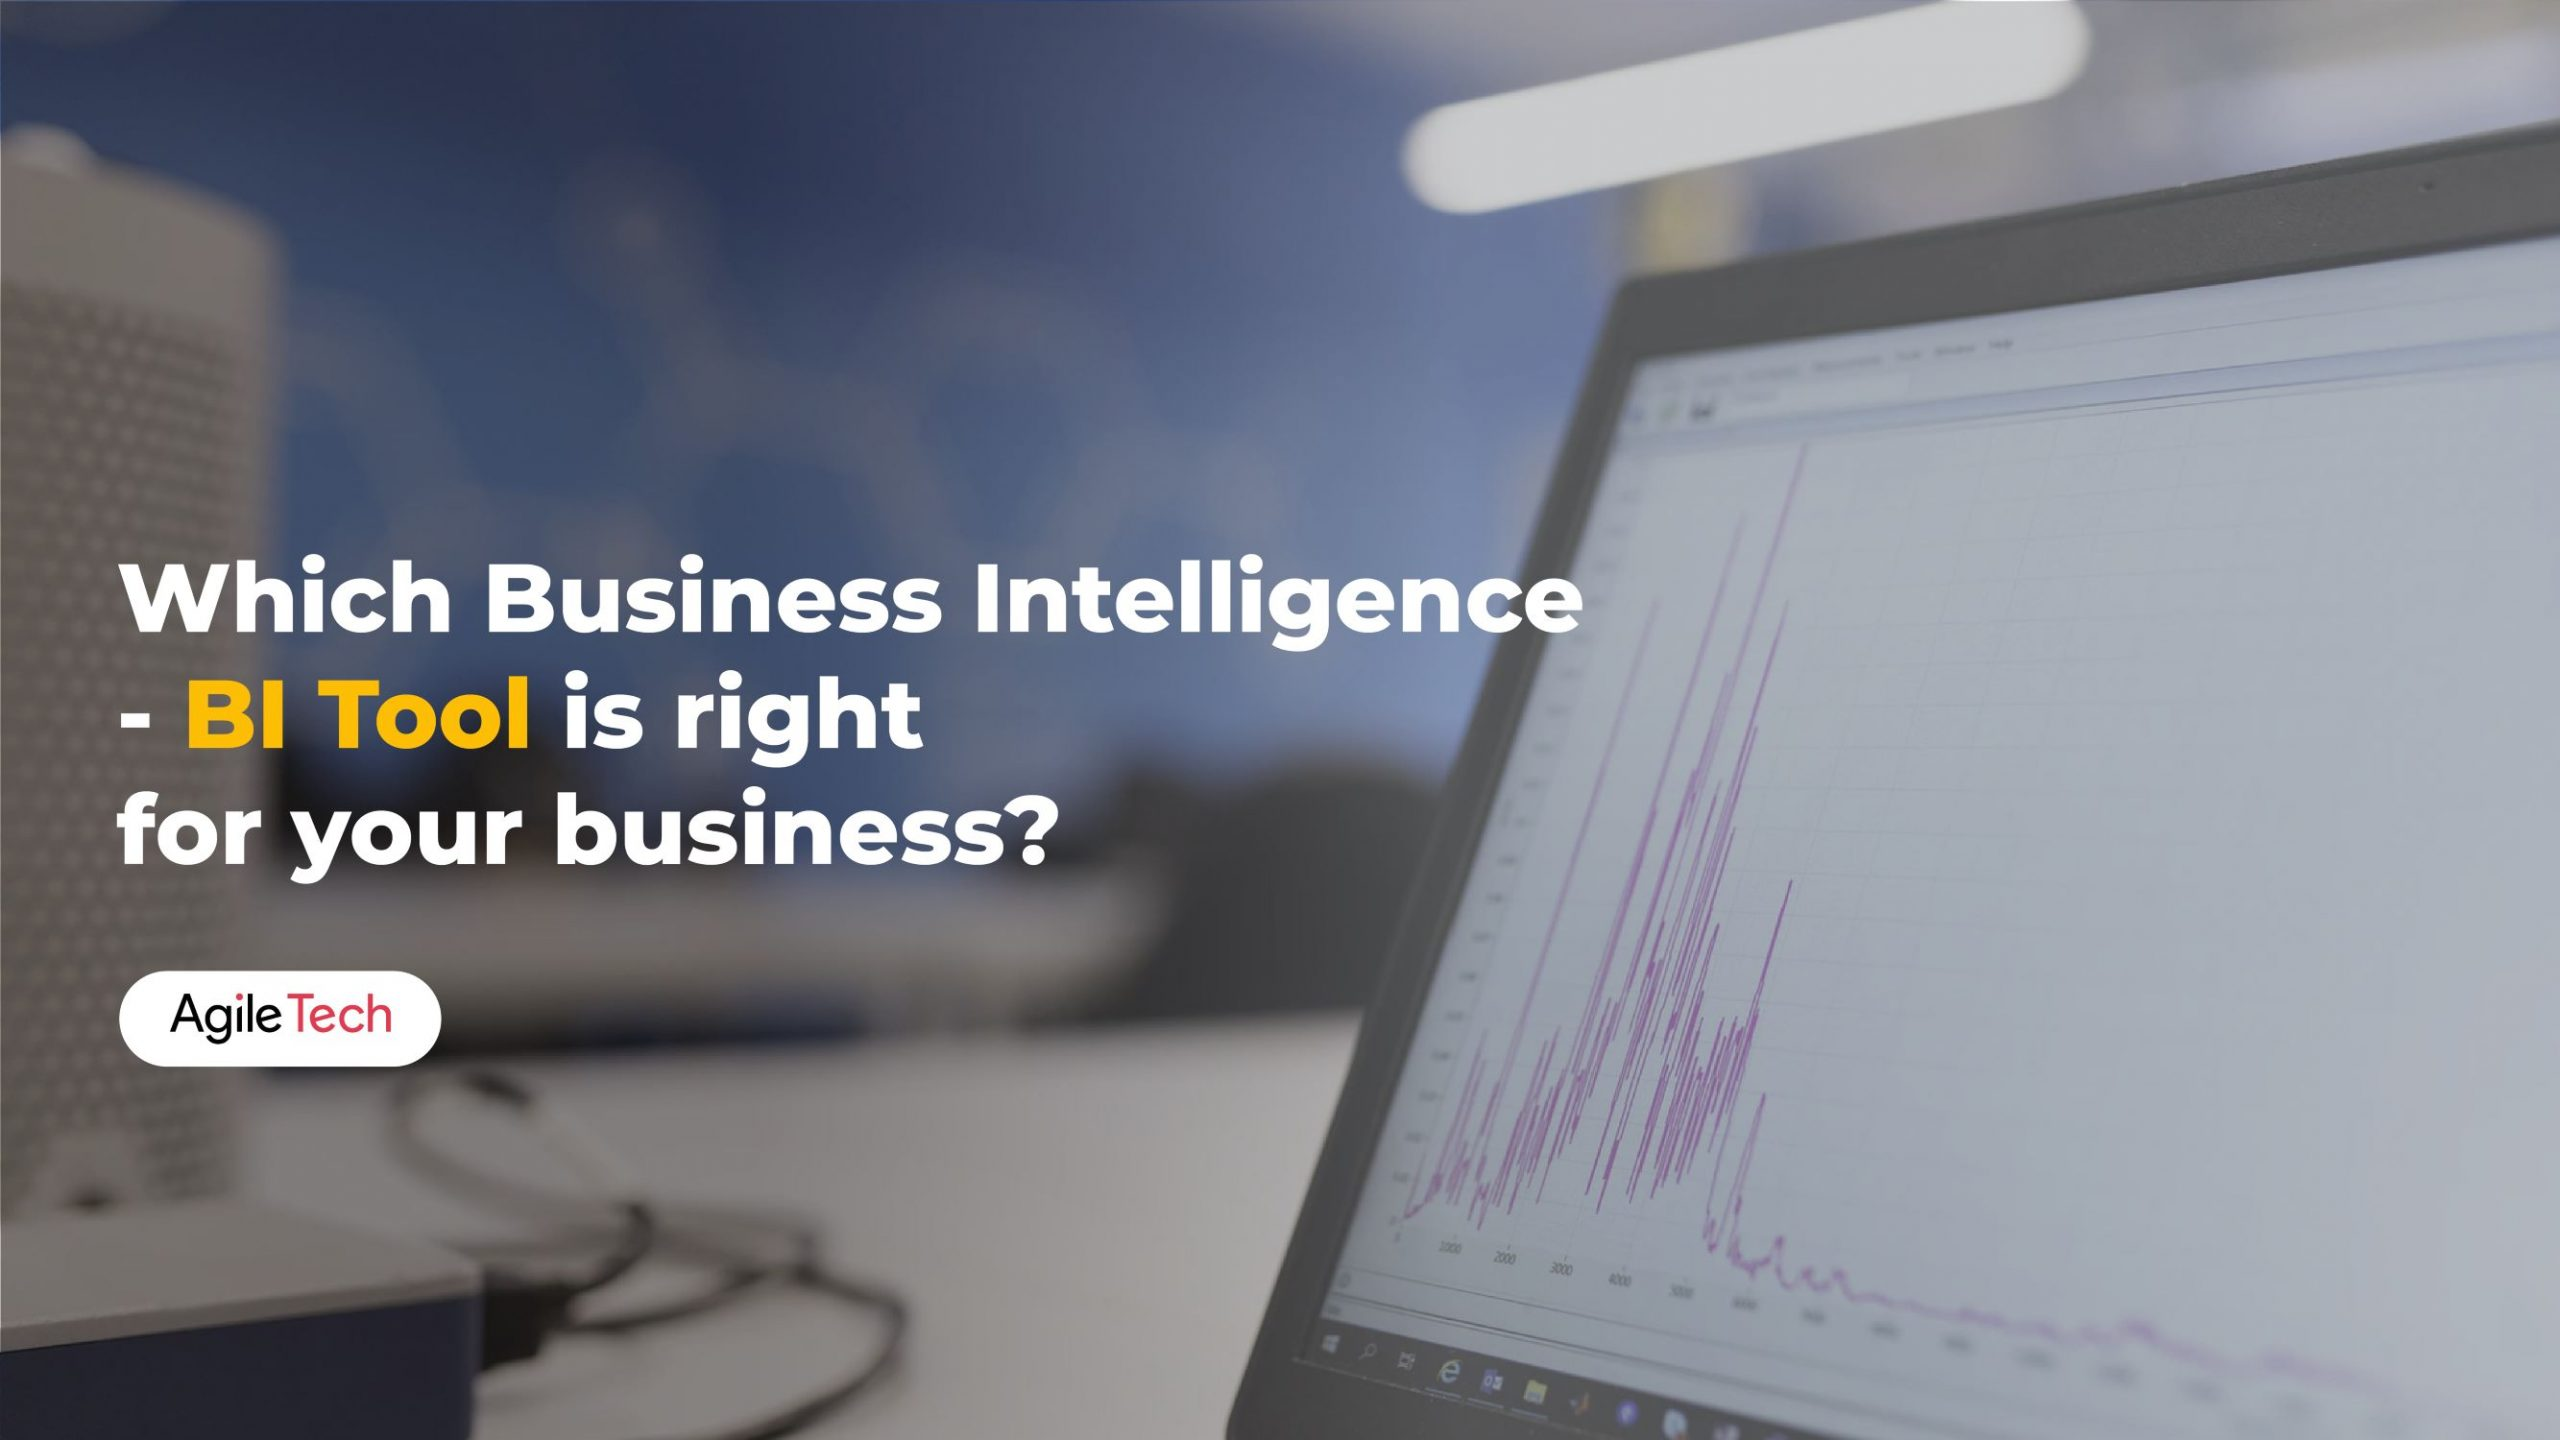 busines intelligence tools, BI Tools comparison for your business, agiletech